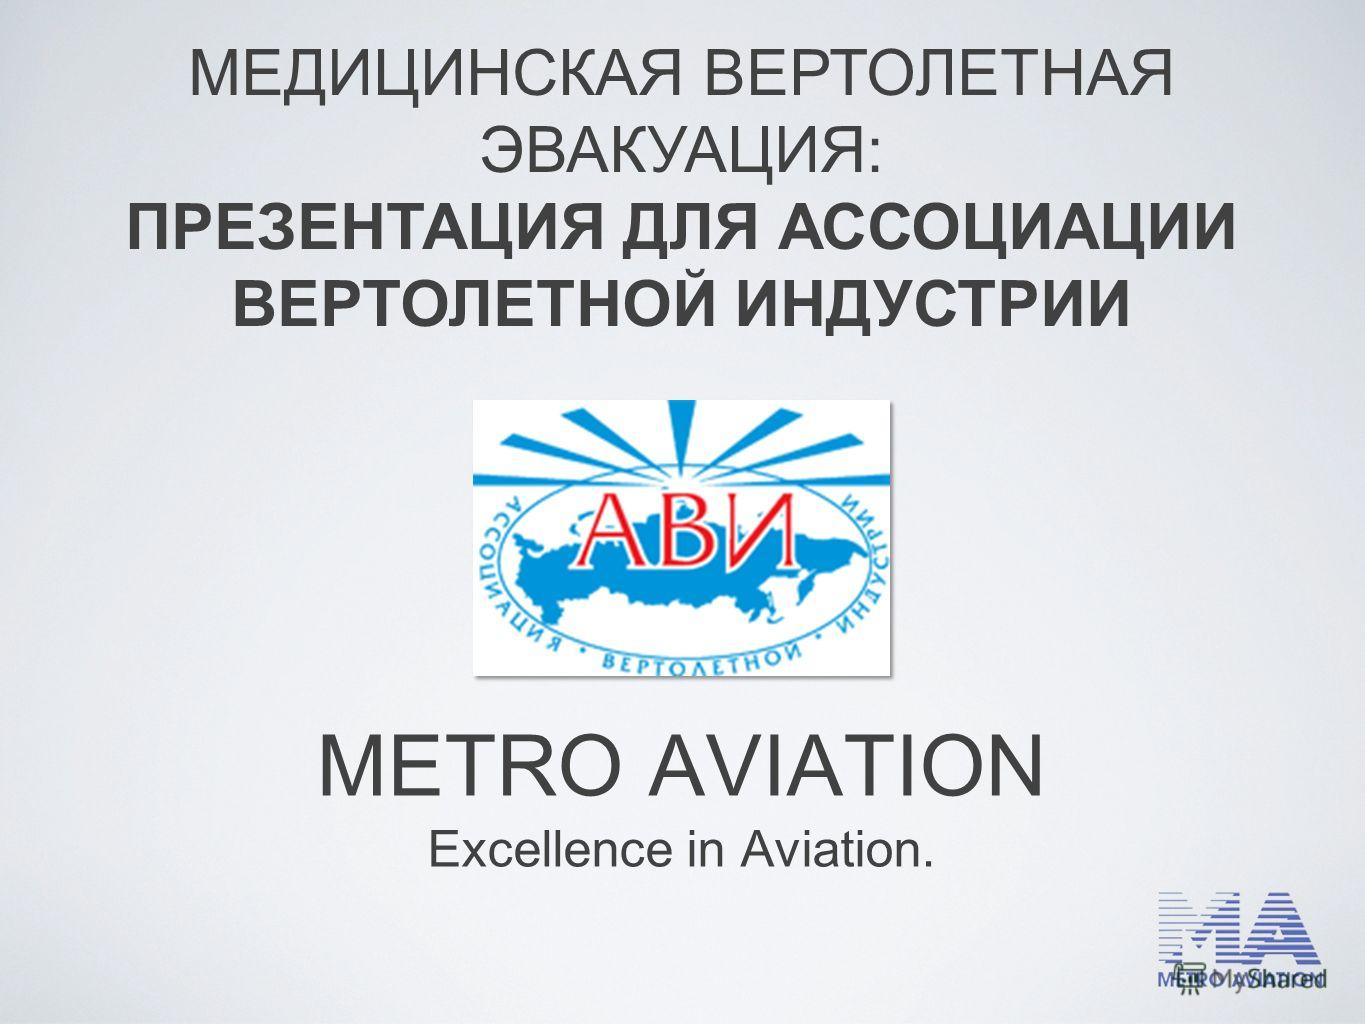 METRO AVIATION Excellence in Aviation. МЕДИЦИНСКАЯ ВЕРТОЛЕТНАЯ ЭВАКУАЦИЯ: ПРЕЗЕНТАЦИЯ ДЛЯ АССОЦИАЦИИ ВЕРТОЛЕТНОЙ ИНДУСТРИИ